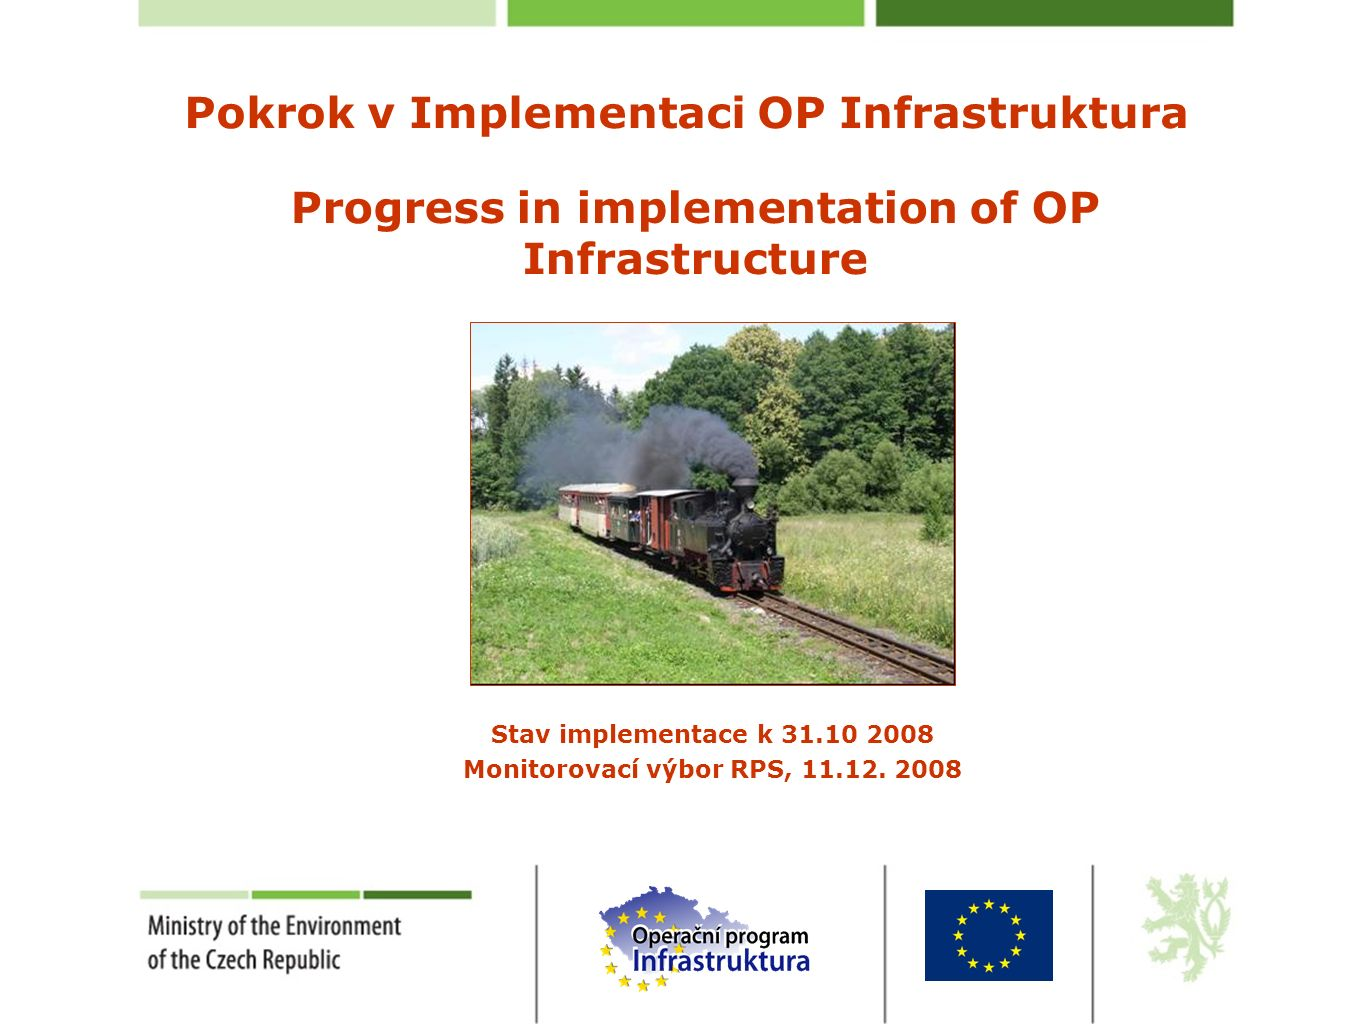 Progress in implementation of OP Infrastructure Stav implementace k 31.10 2008 Monitorovací výbor RPS, 11.12.